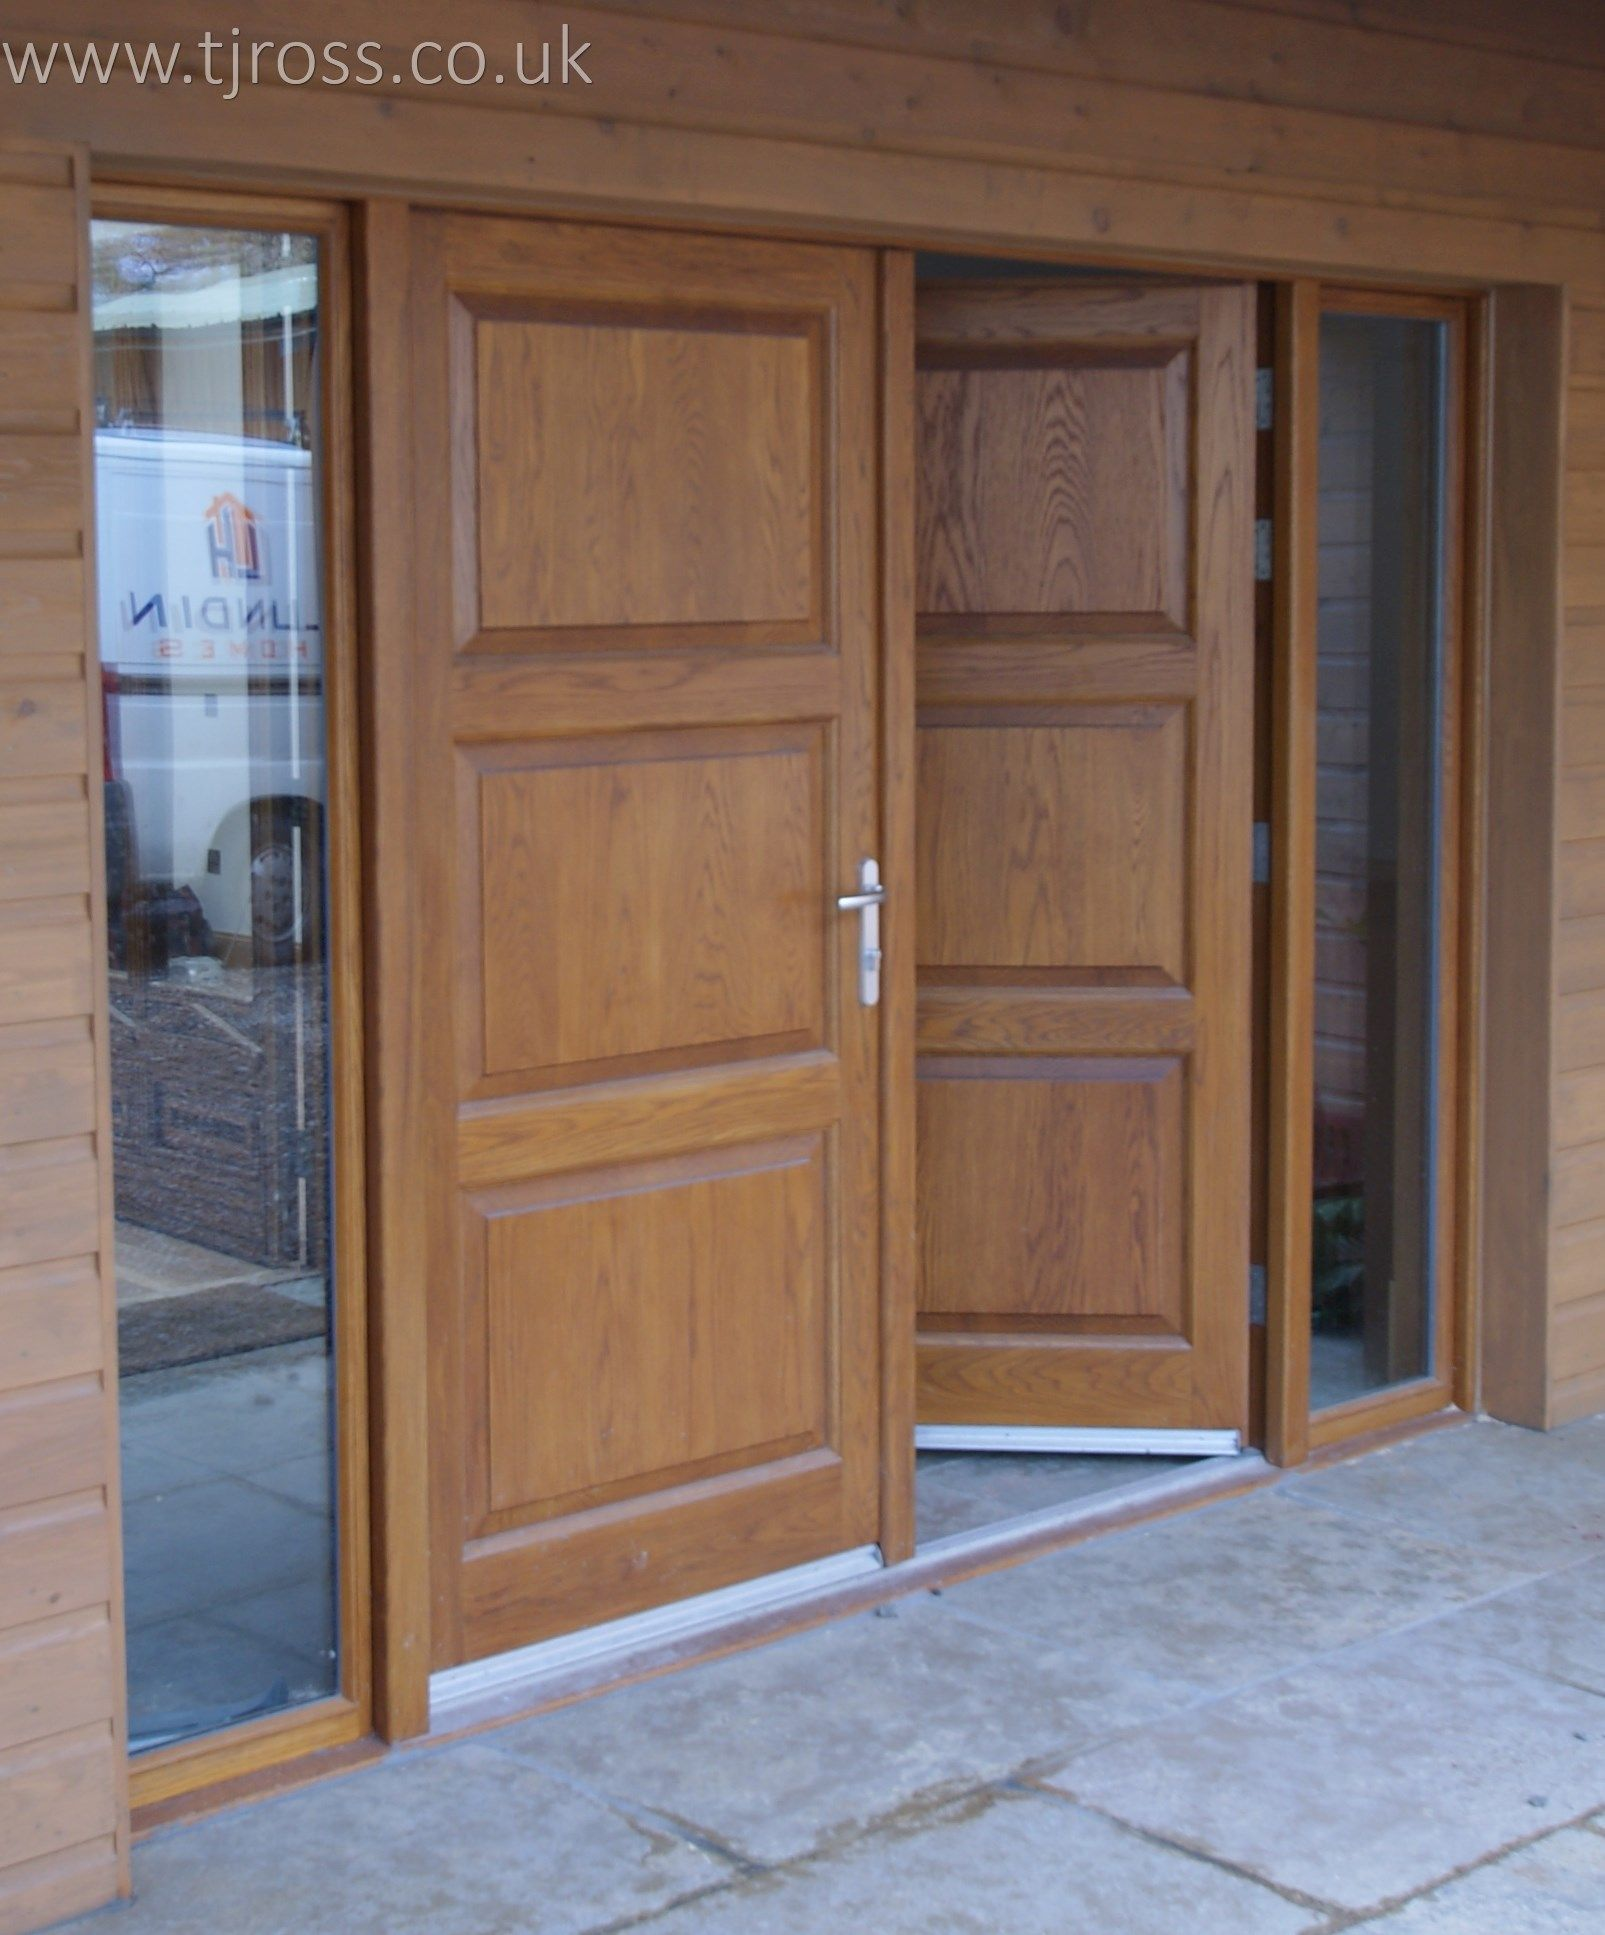 Marvelous Wooden Exterior Doors Made To Measure Gallery Ideas House Design